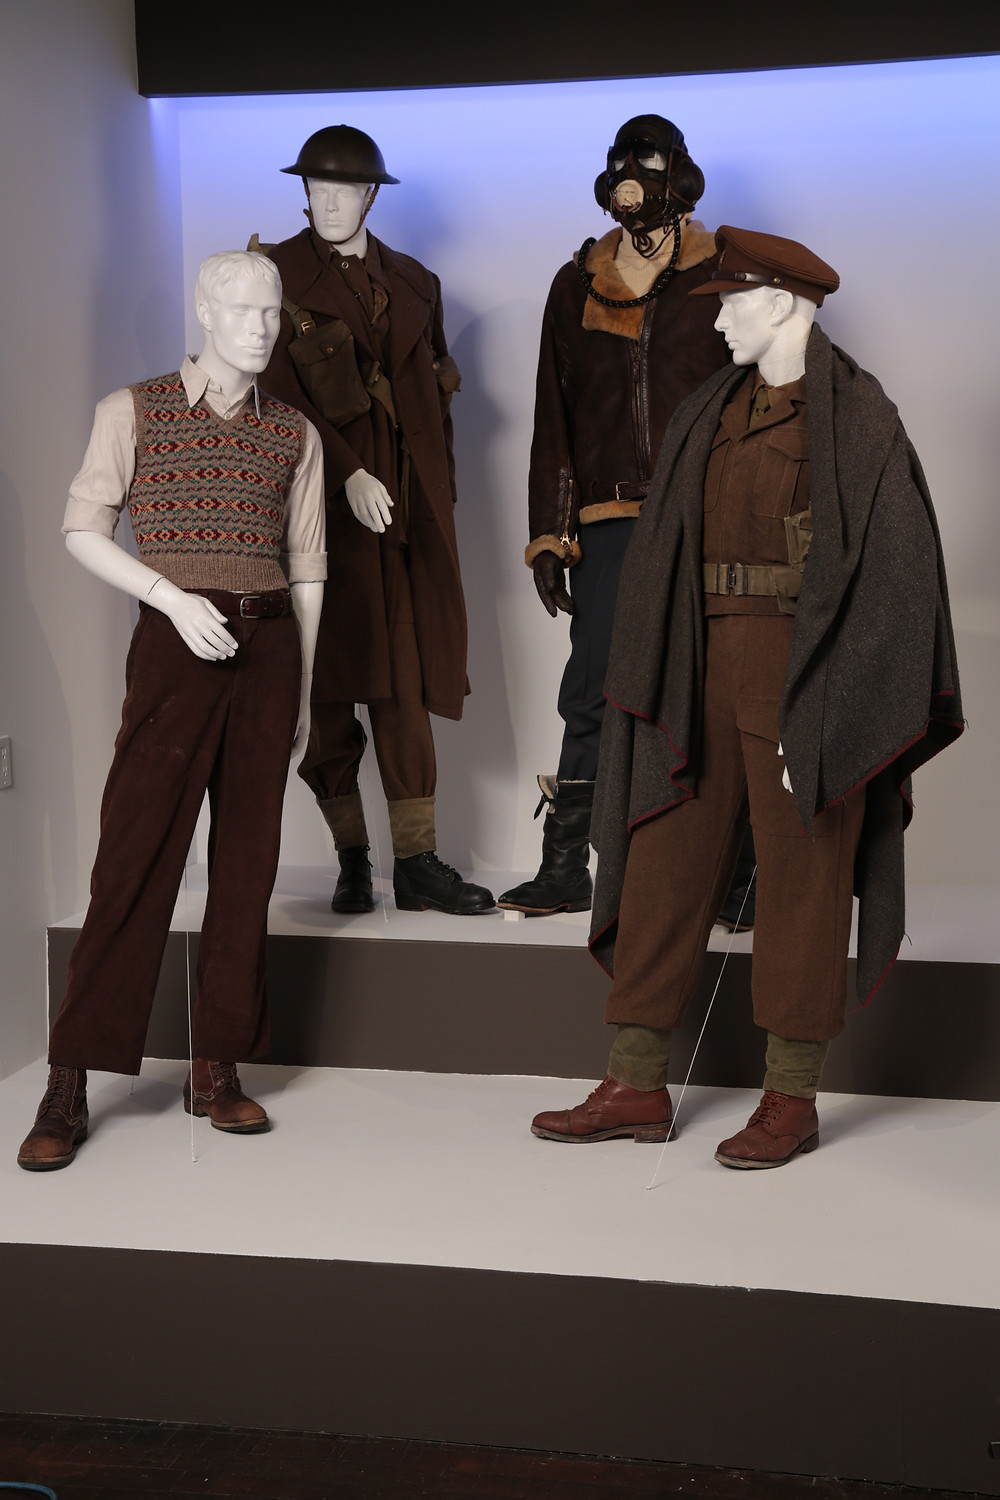 """Dunkirk"" costumes by Jeffrey Kurland. (L to R) Costumes worn by actors: Cillian Murphy as Shivering Soldier, Finn Whitehead as Tommy, Tom Hardy as Farrier, Barry Keoghan as George"